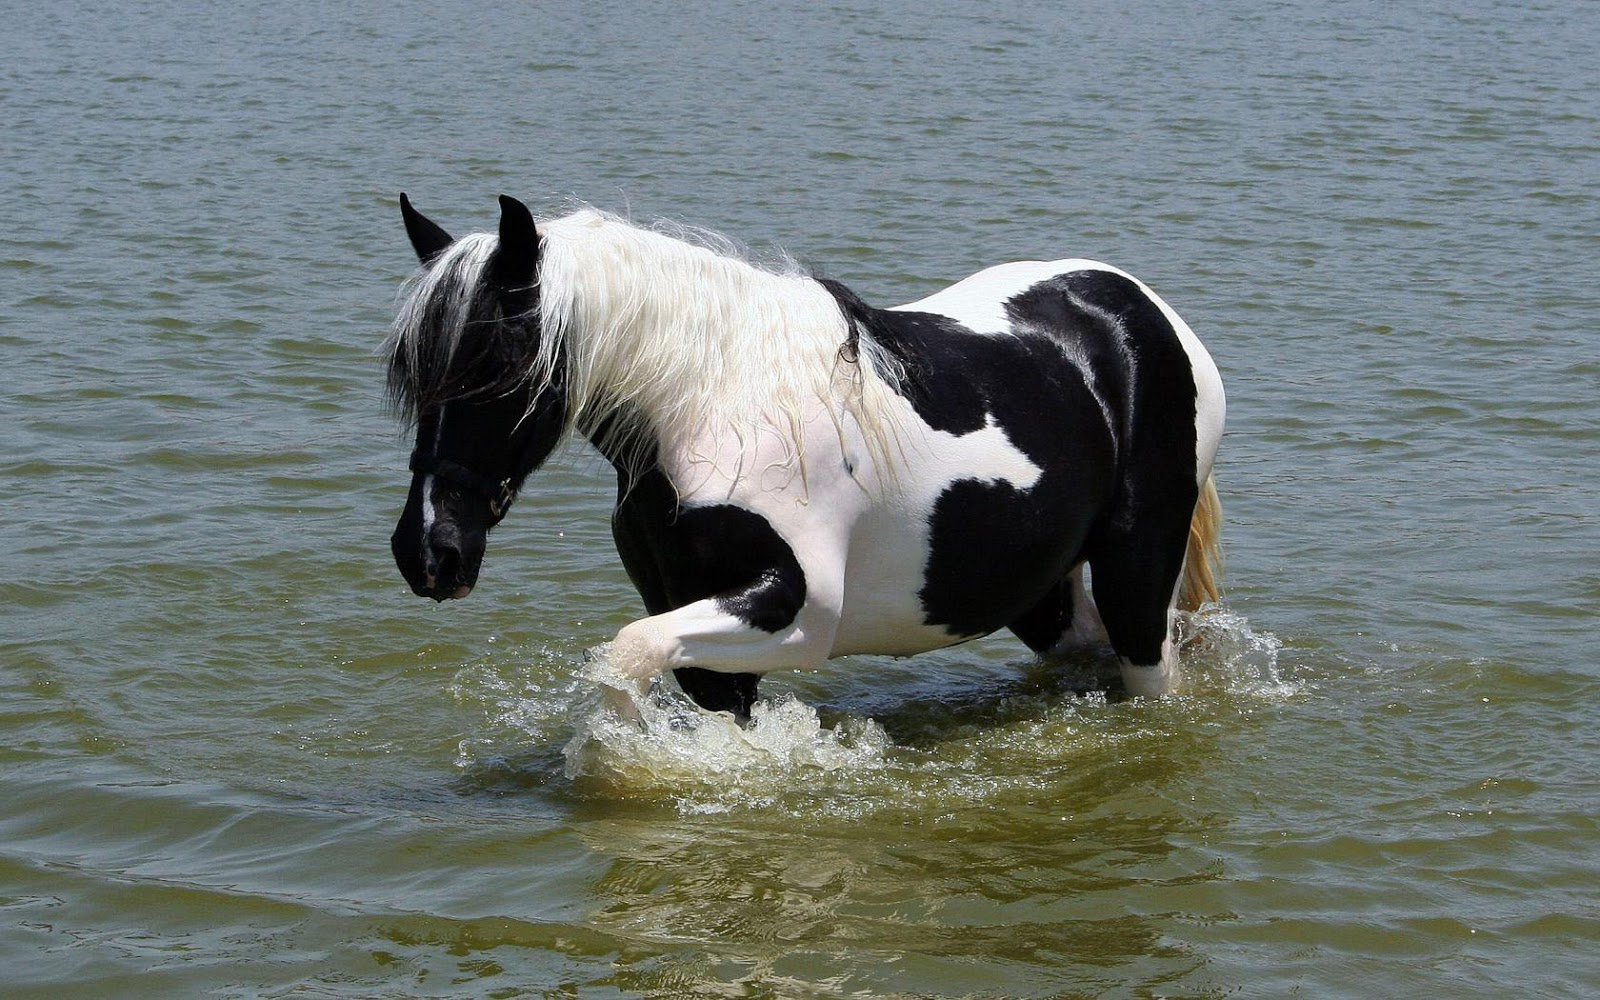 White and black horse inside water pictures